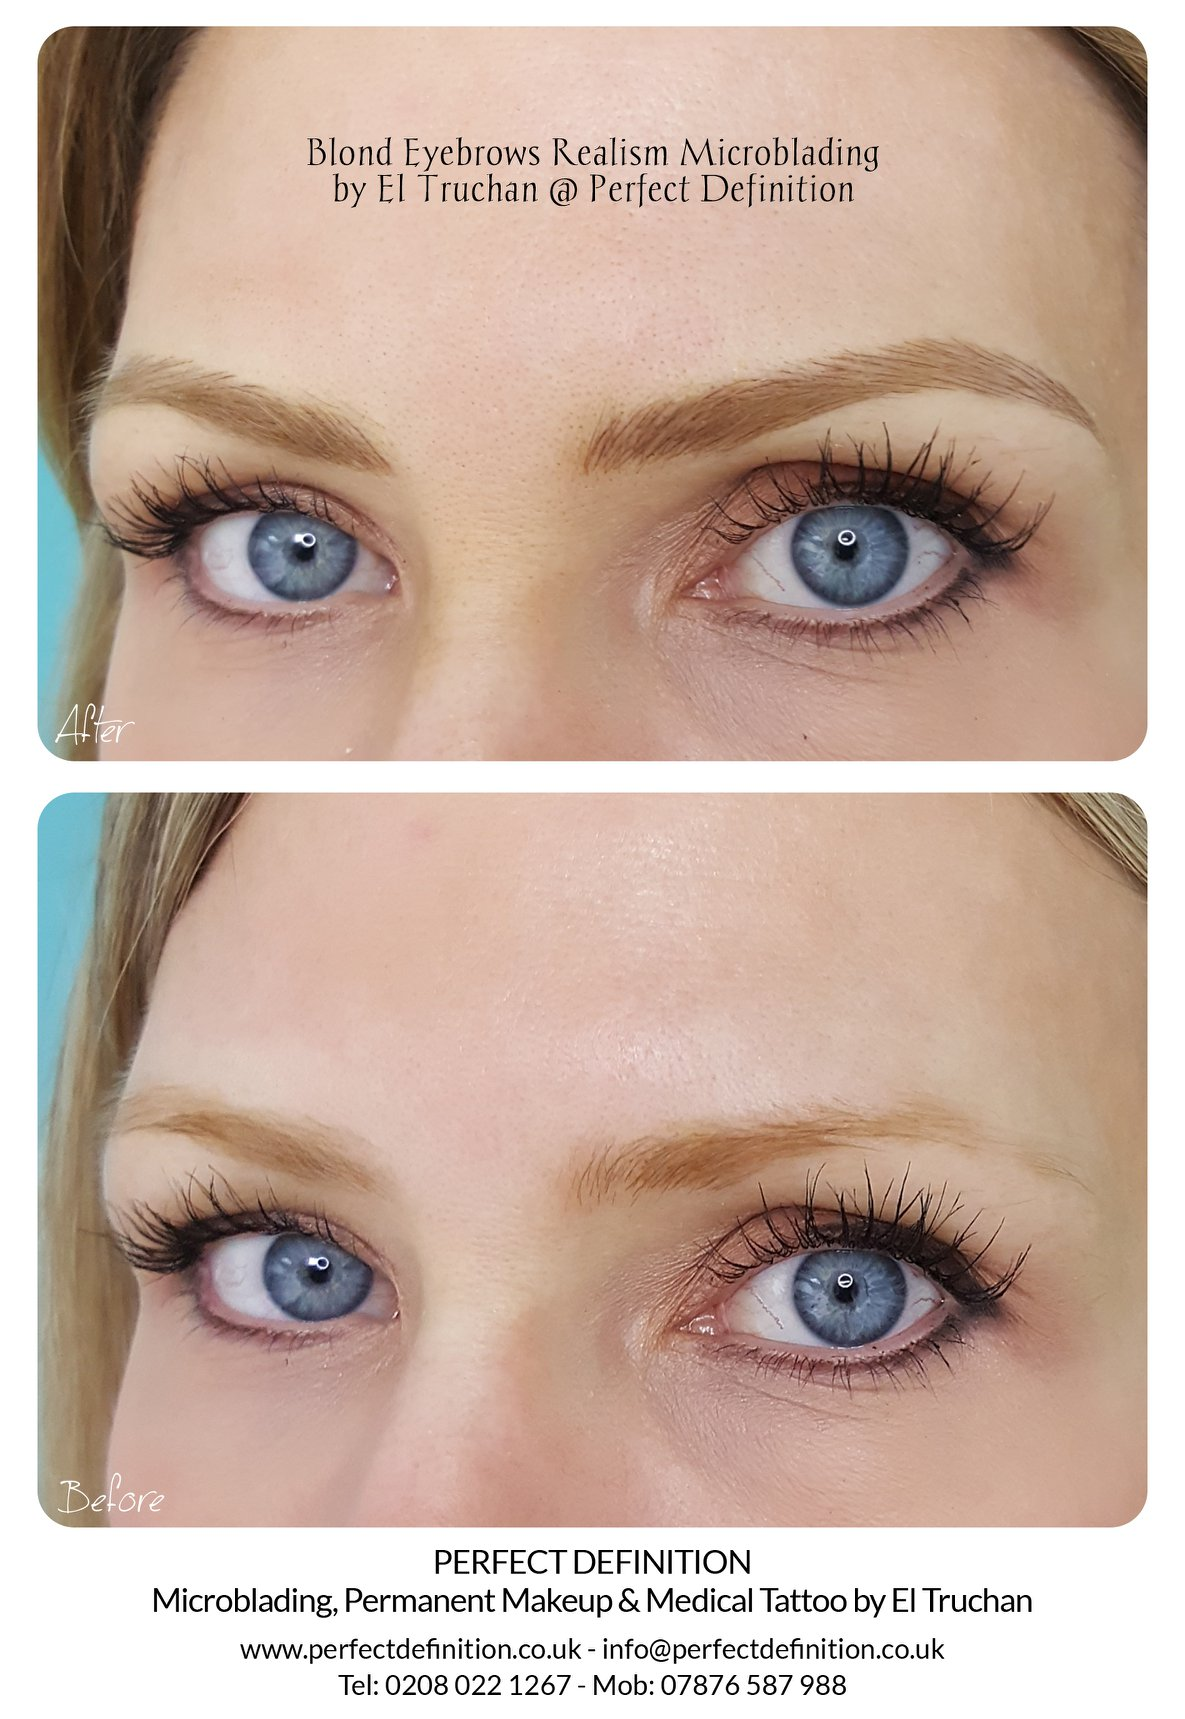 Blonde Eyebrows Realism Microblading by